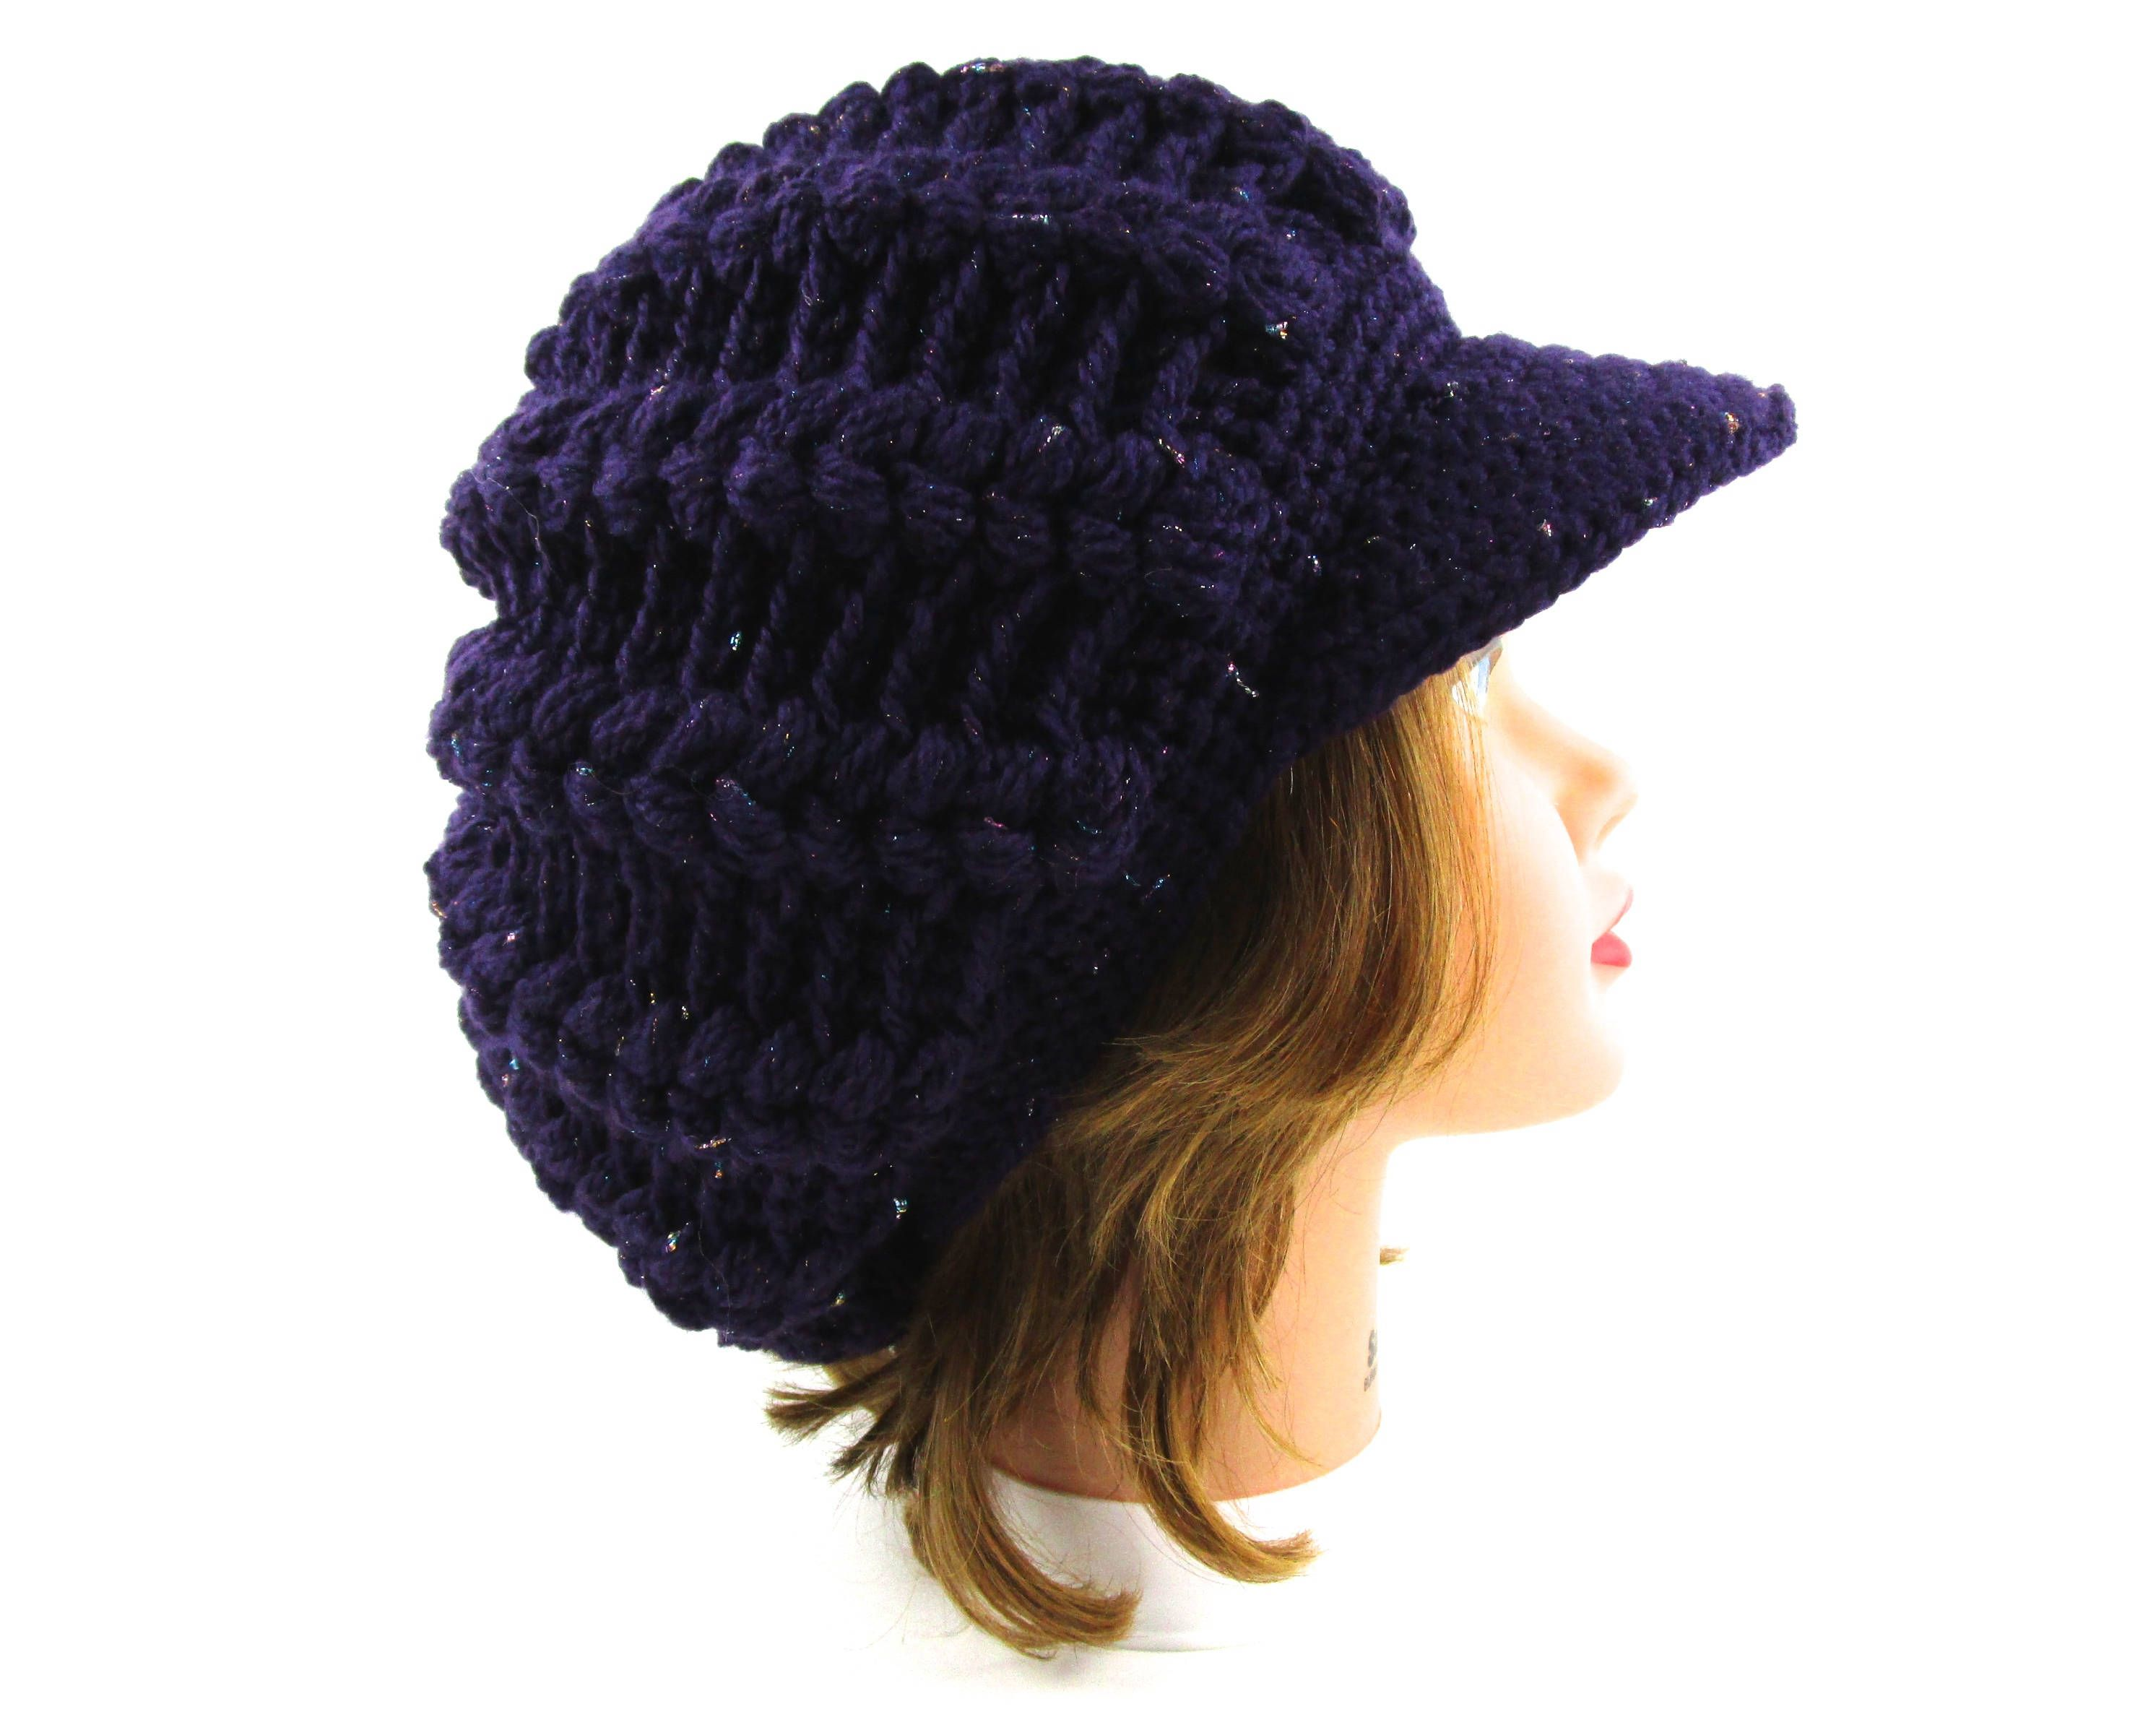 ade55051833 Purple Newsboy Hat - Crochet Cap - Slouchy Tam With Visor - Brimmed Beanie  - Women s